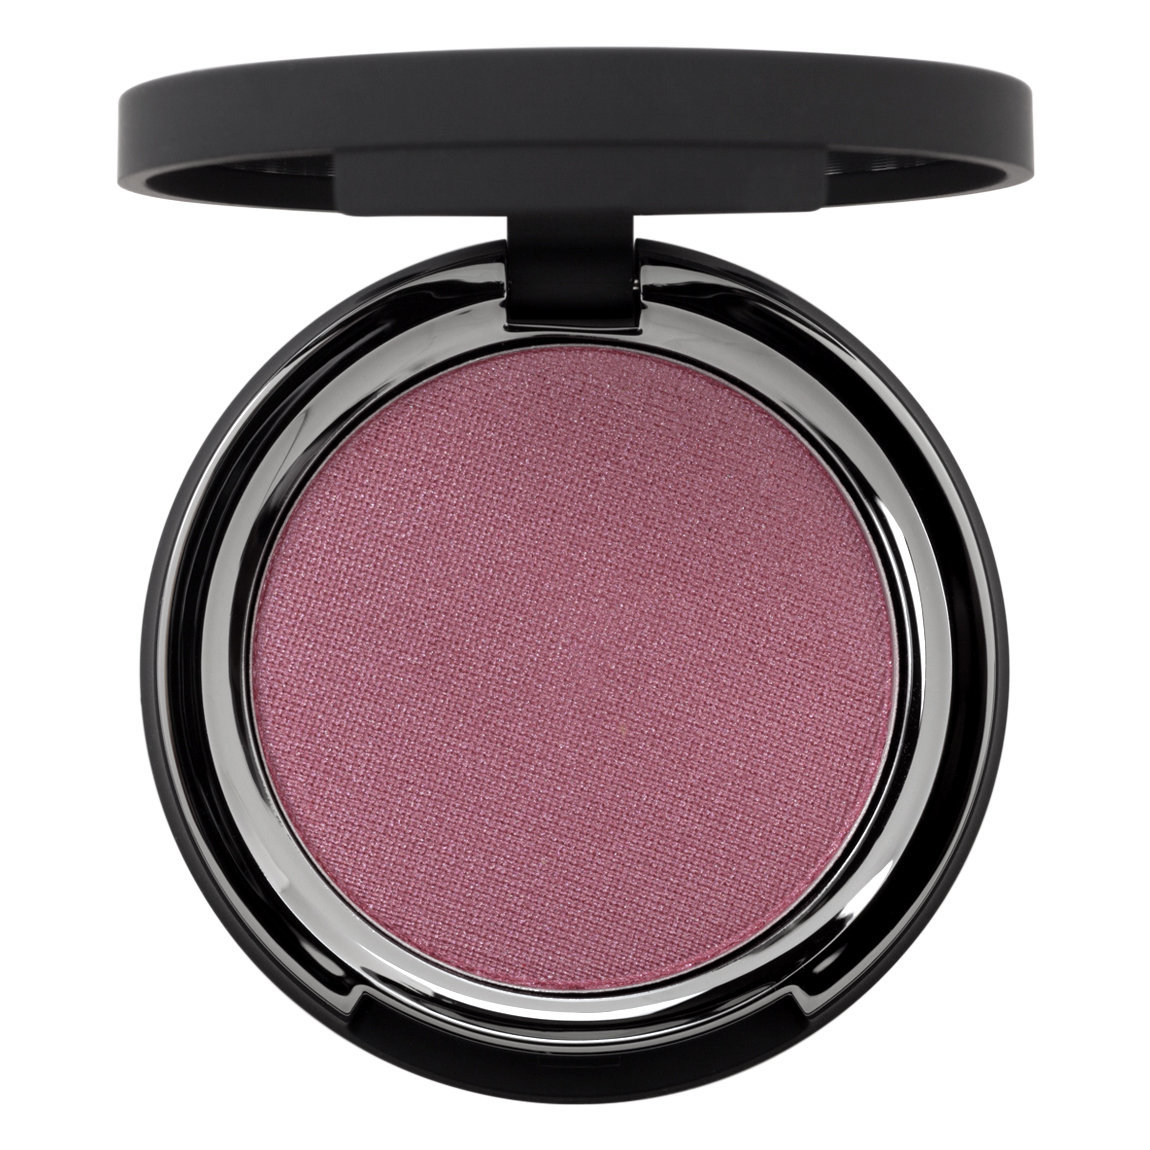 IT Cosmetics  Vitality Cheek Flush Powder Blush Stain Magical In Mauve product swatch.